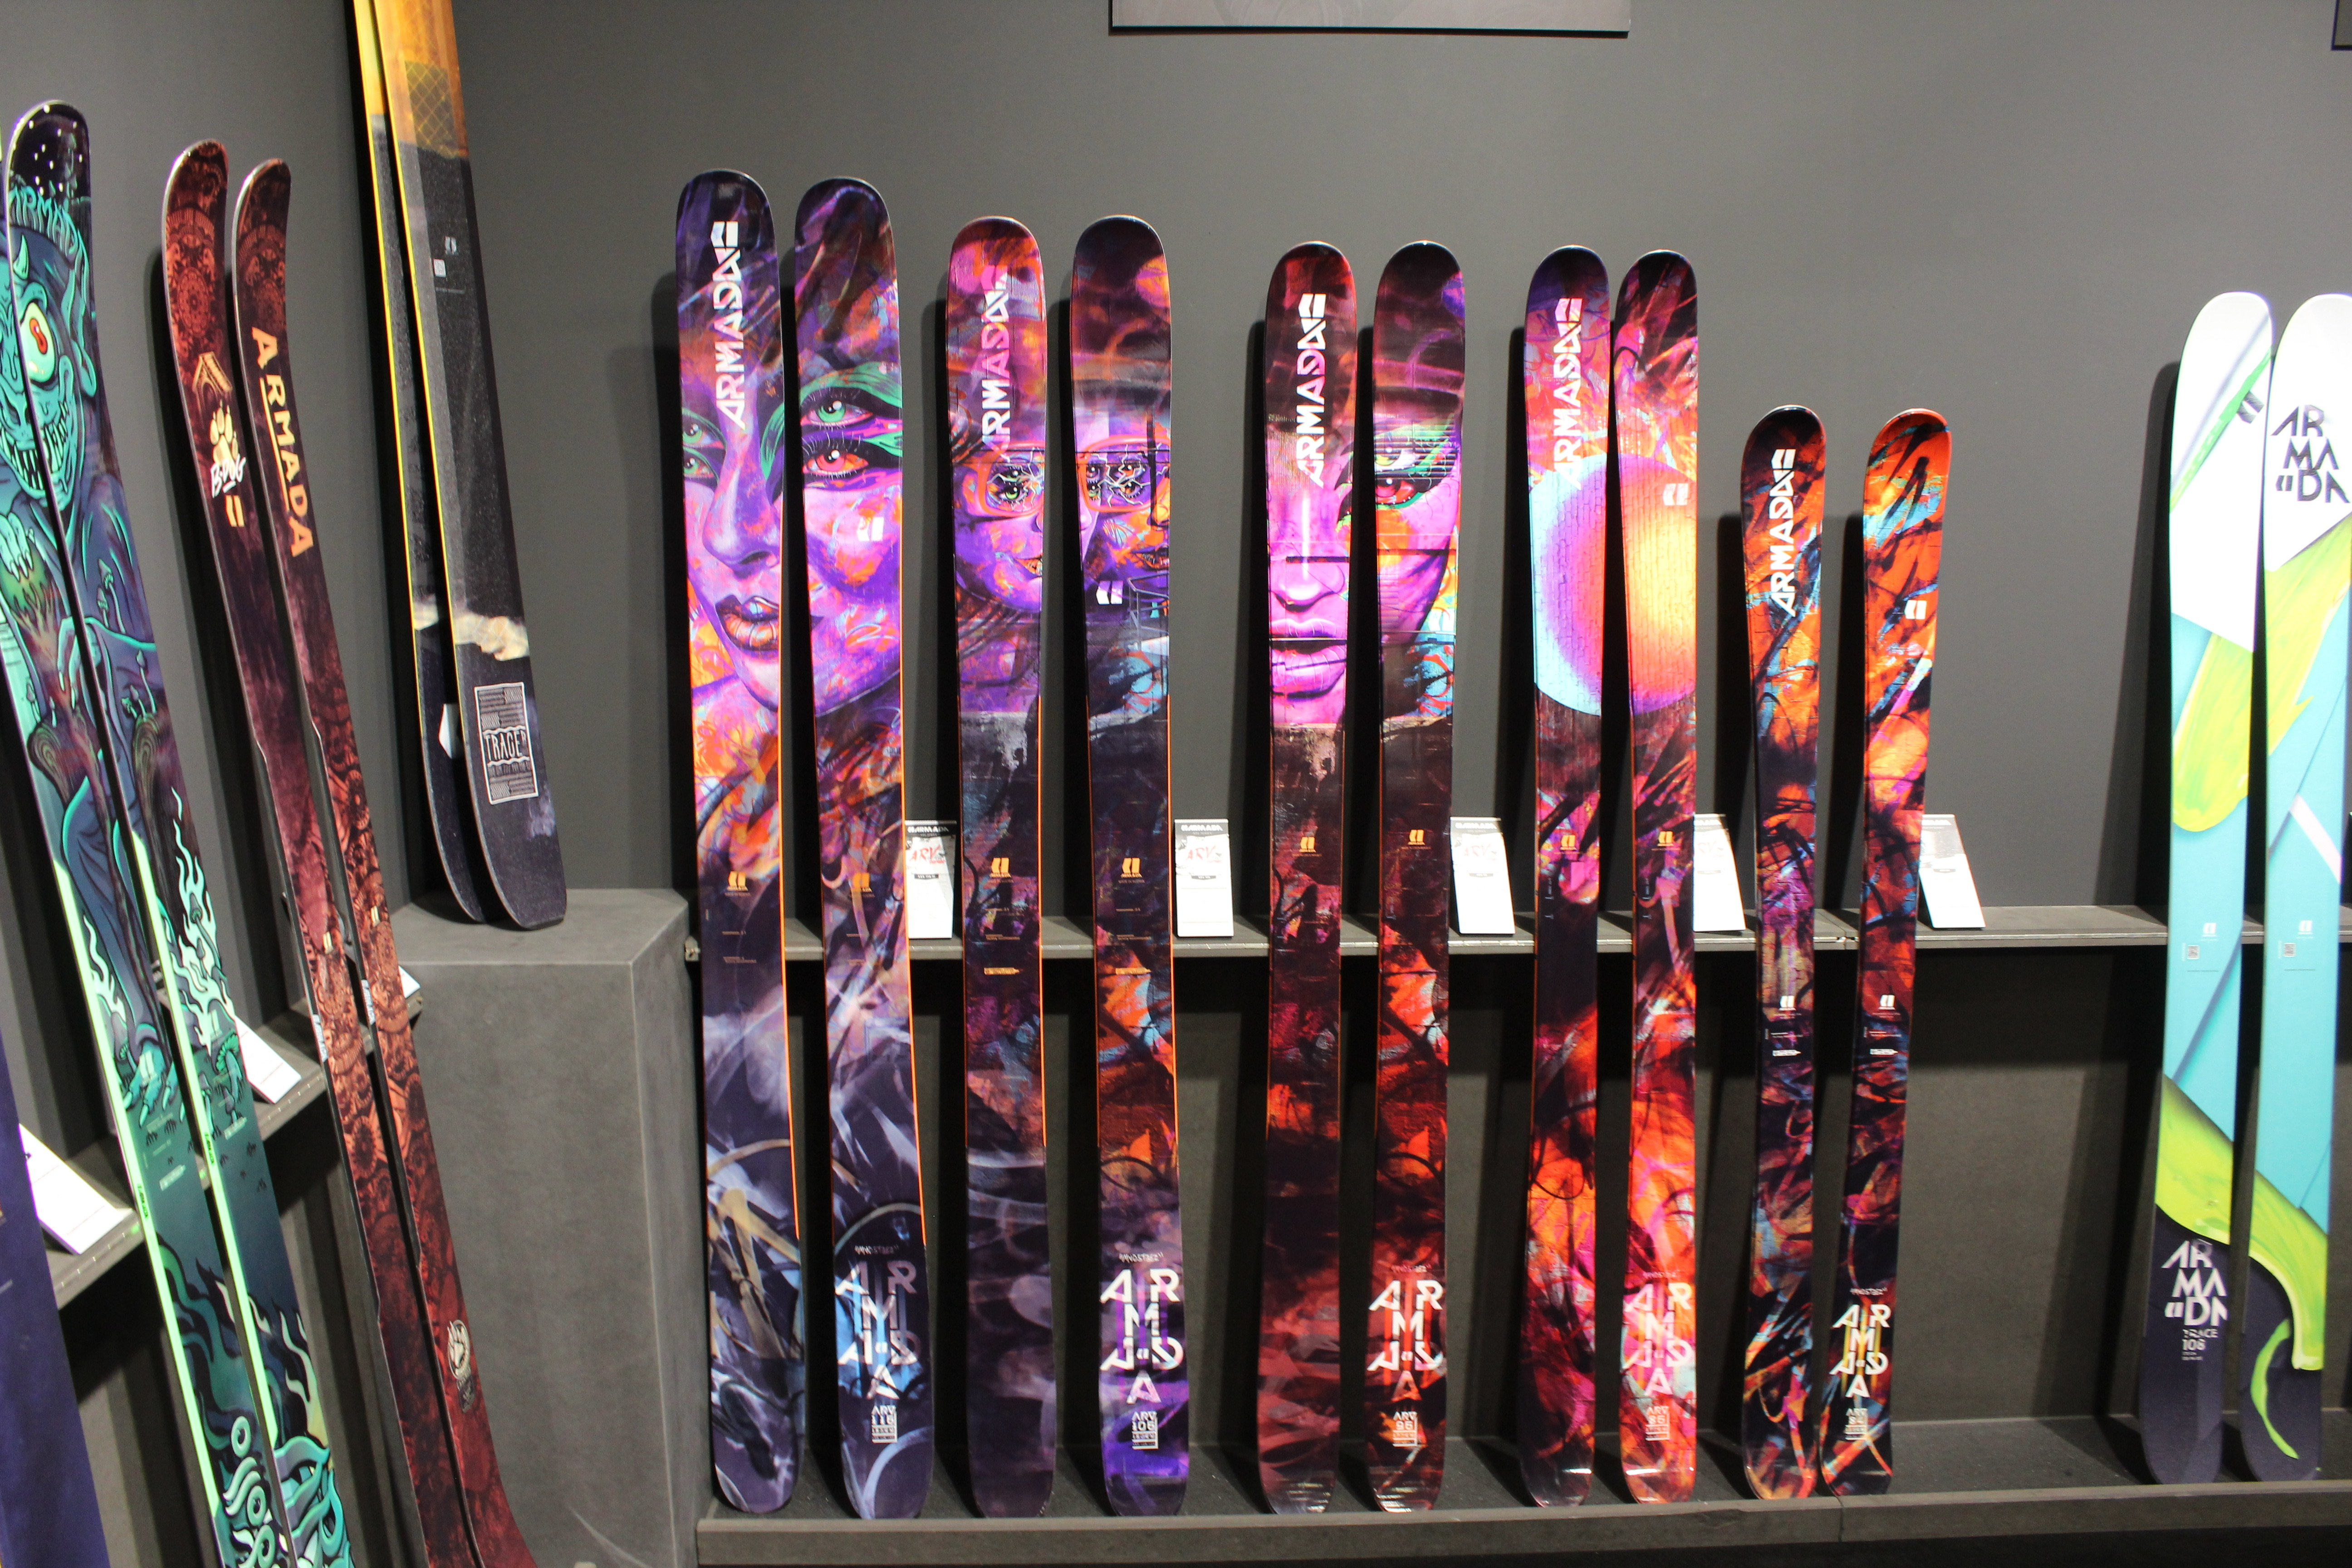 Armada's new 2017/18 line on display at ISPO. They've always been known for innovative shaping and flamboyant graphics